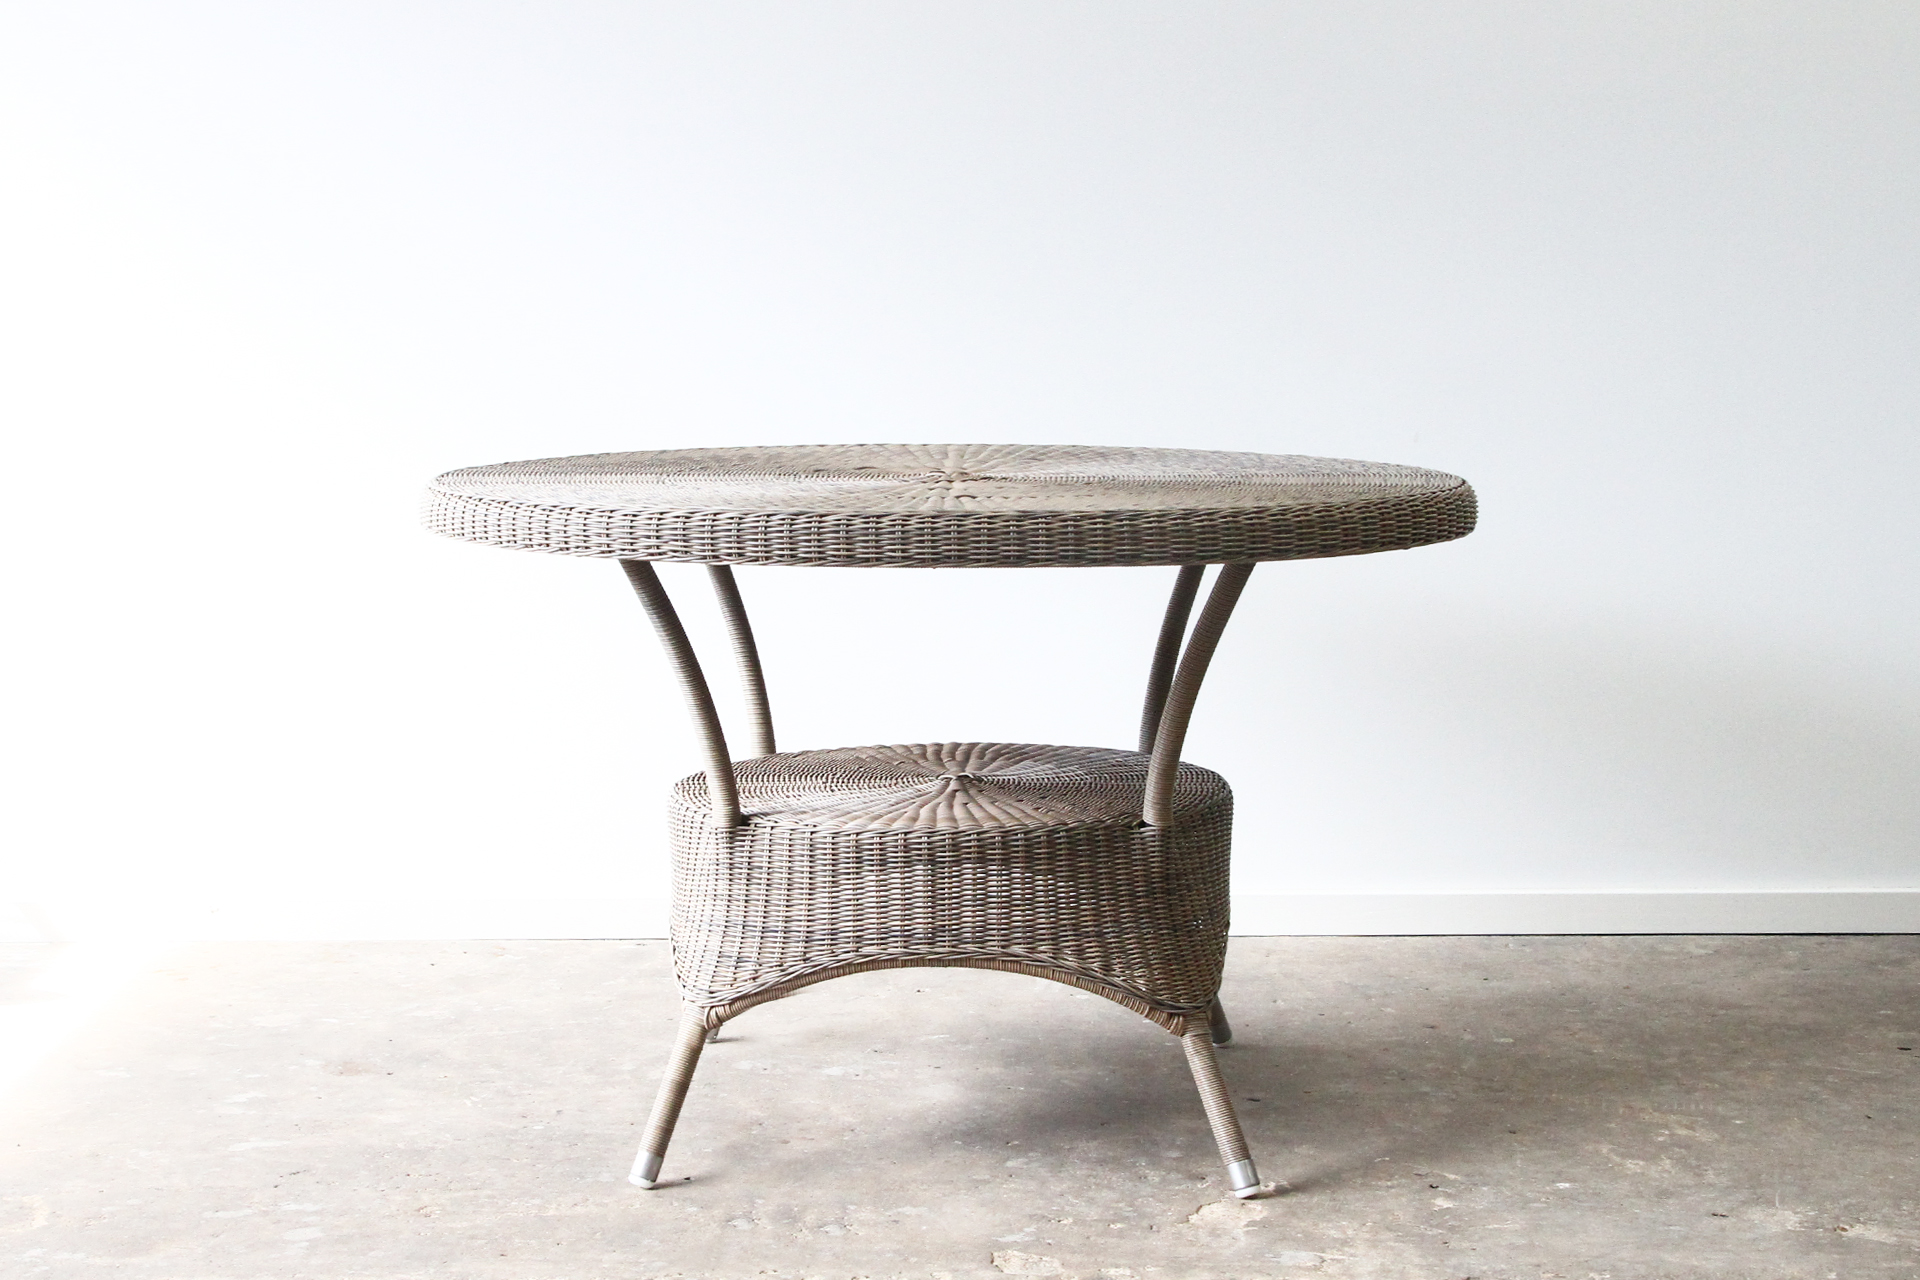 Hampshire 1200 Mm Table Ls Naturally Cane Rattan And Wicker Furniture